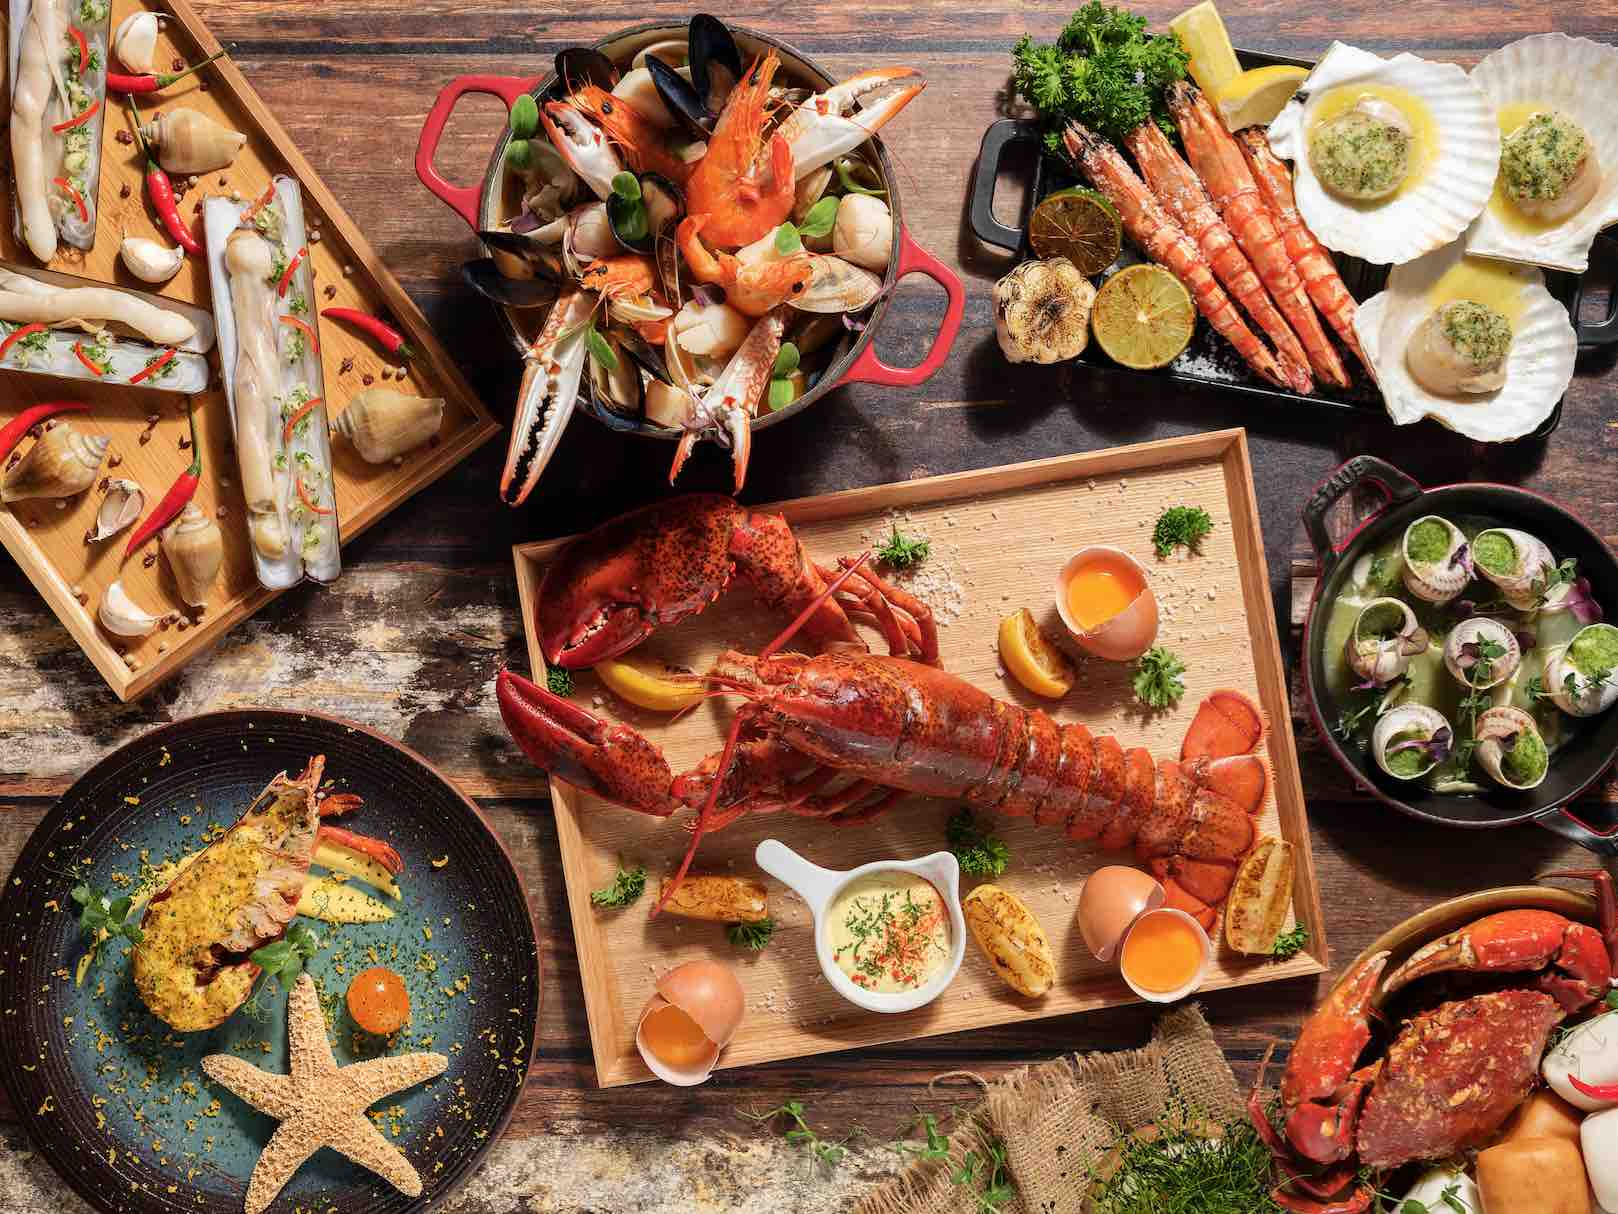 what the shell lime restaurant seafood buffet extravaganza rh aspirantsg com seafood lunch buffet bangkok seafood lunch buffet near me